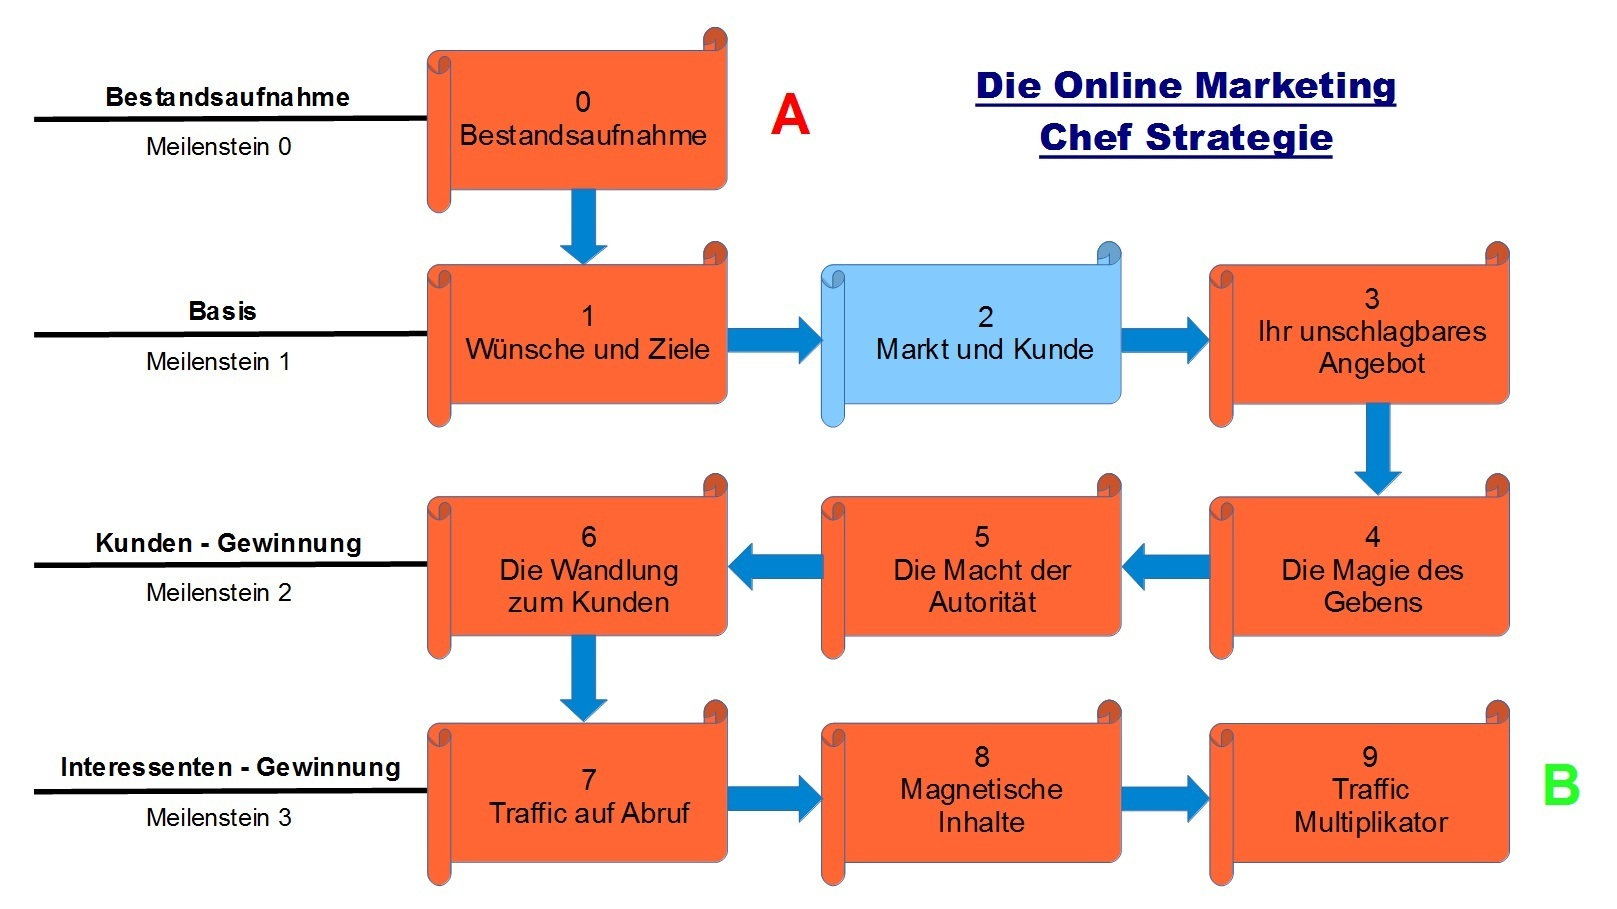 Schritt 2 - Die Online Marketing Chef Strategie